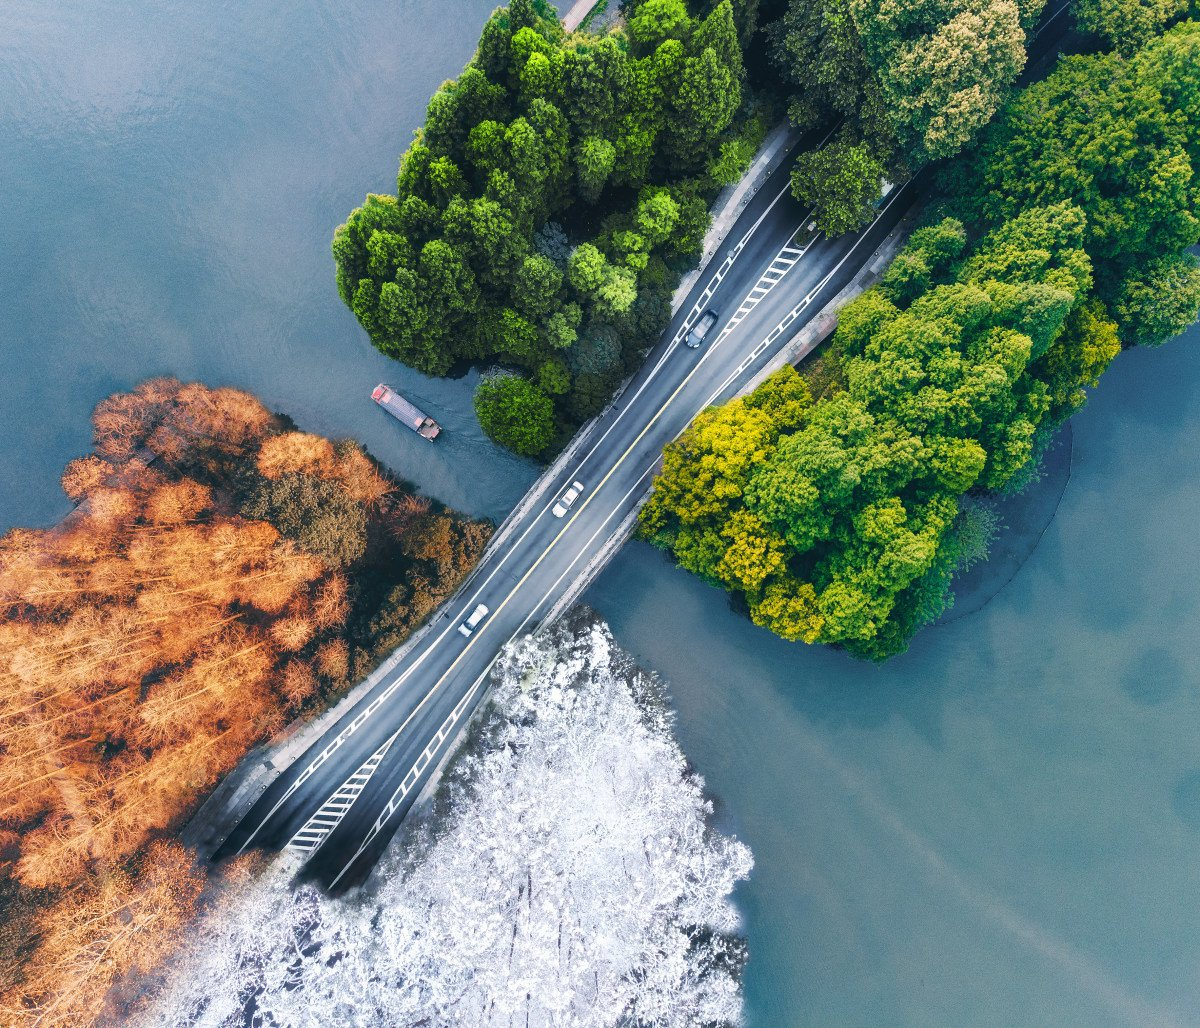 Today's awesome #POTD is from Luxiang Zhu who combined the 4 seasons into one awesome shot using a #MavicAir! 📷👇  Learn More: http://bit.ly/DJI-M-Air